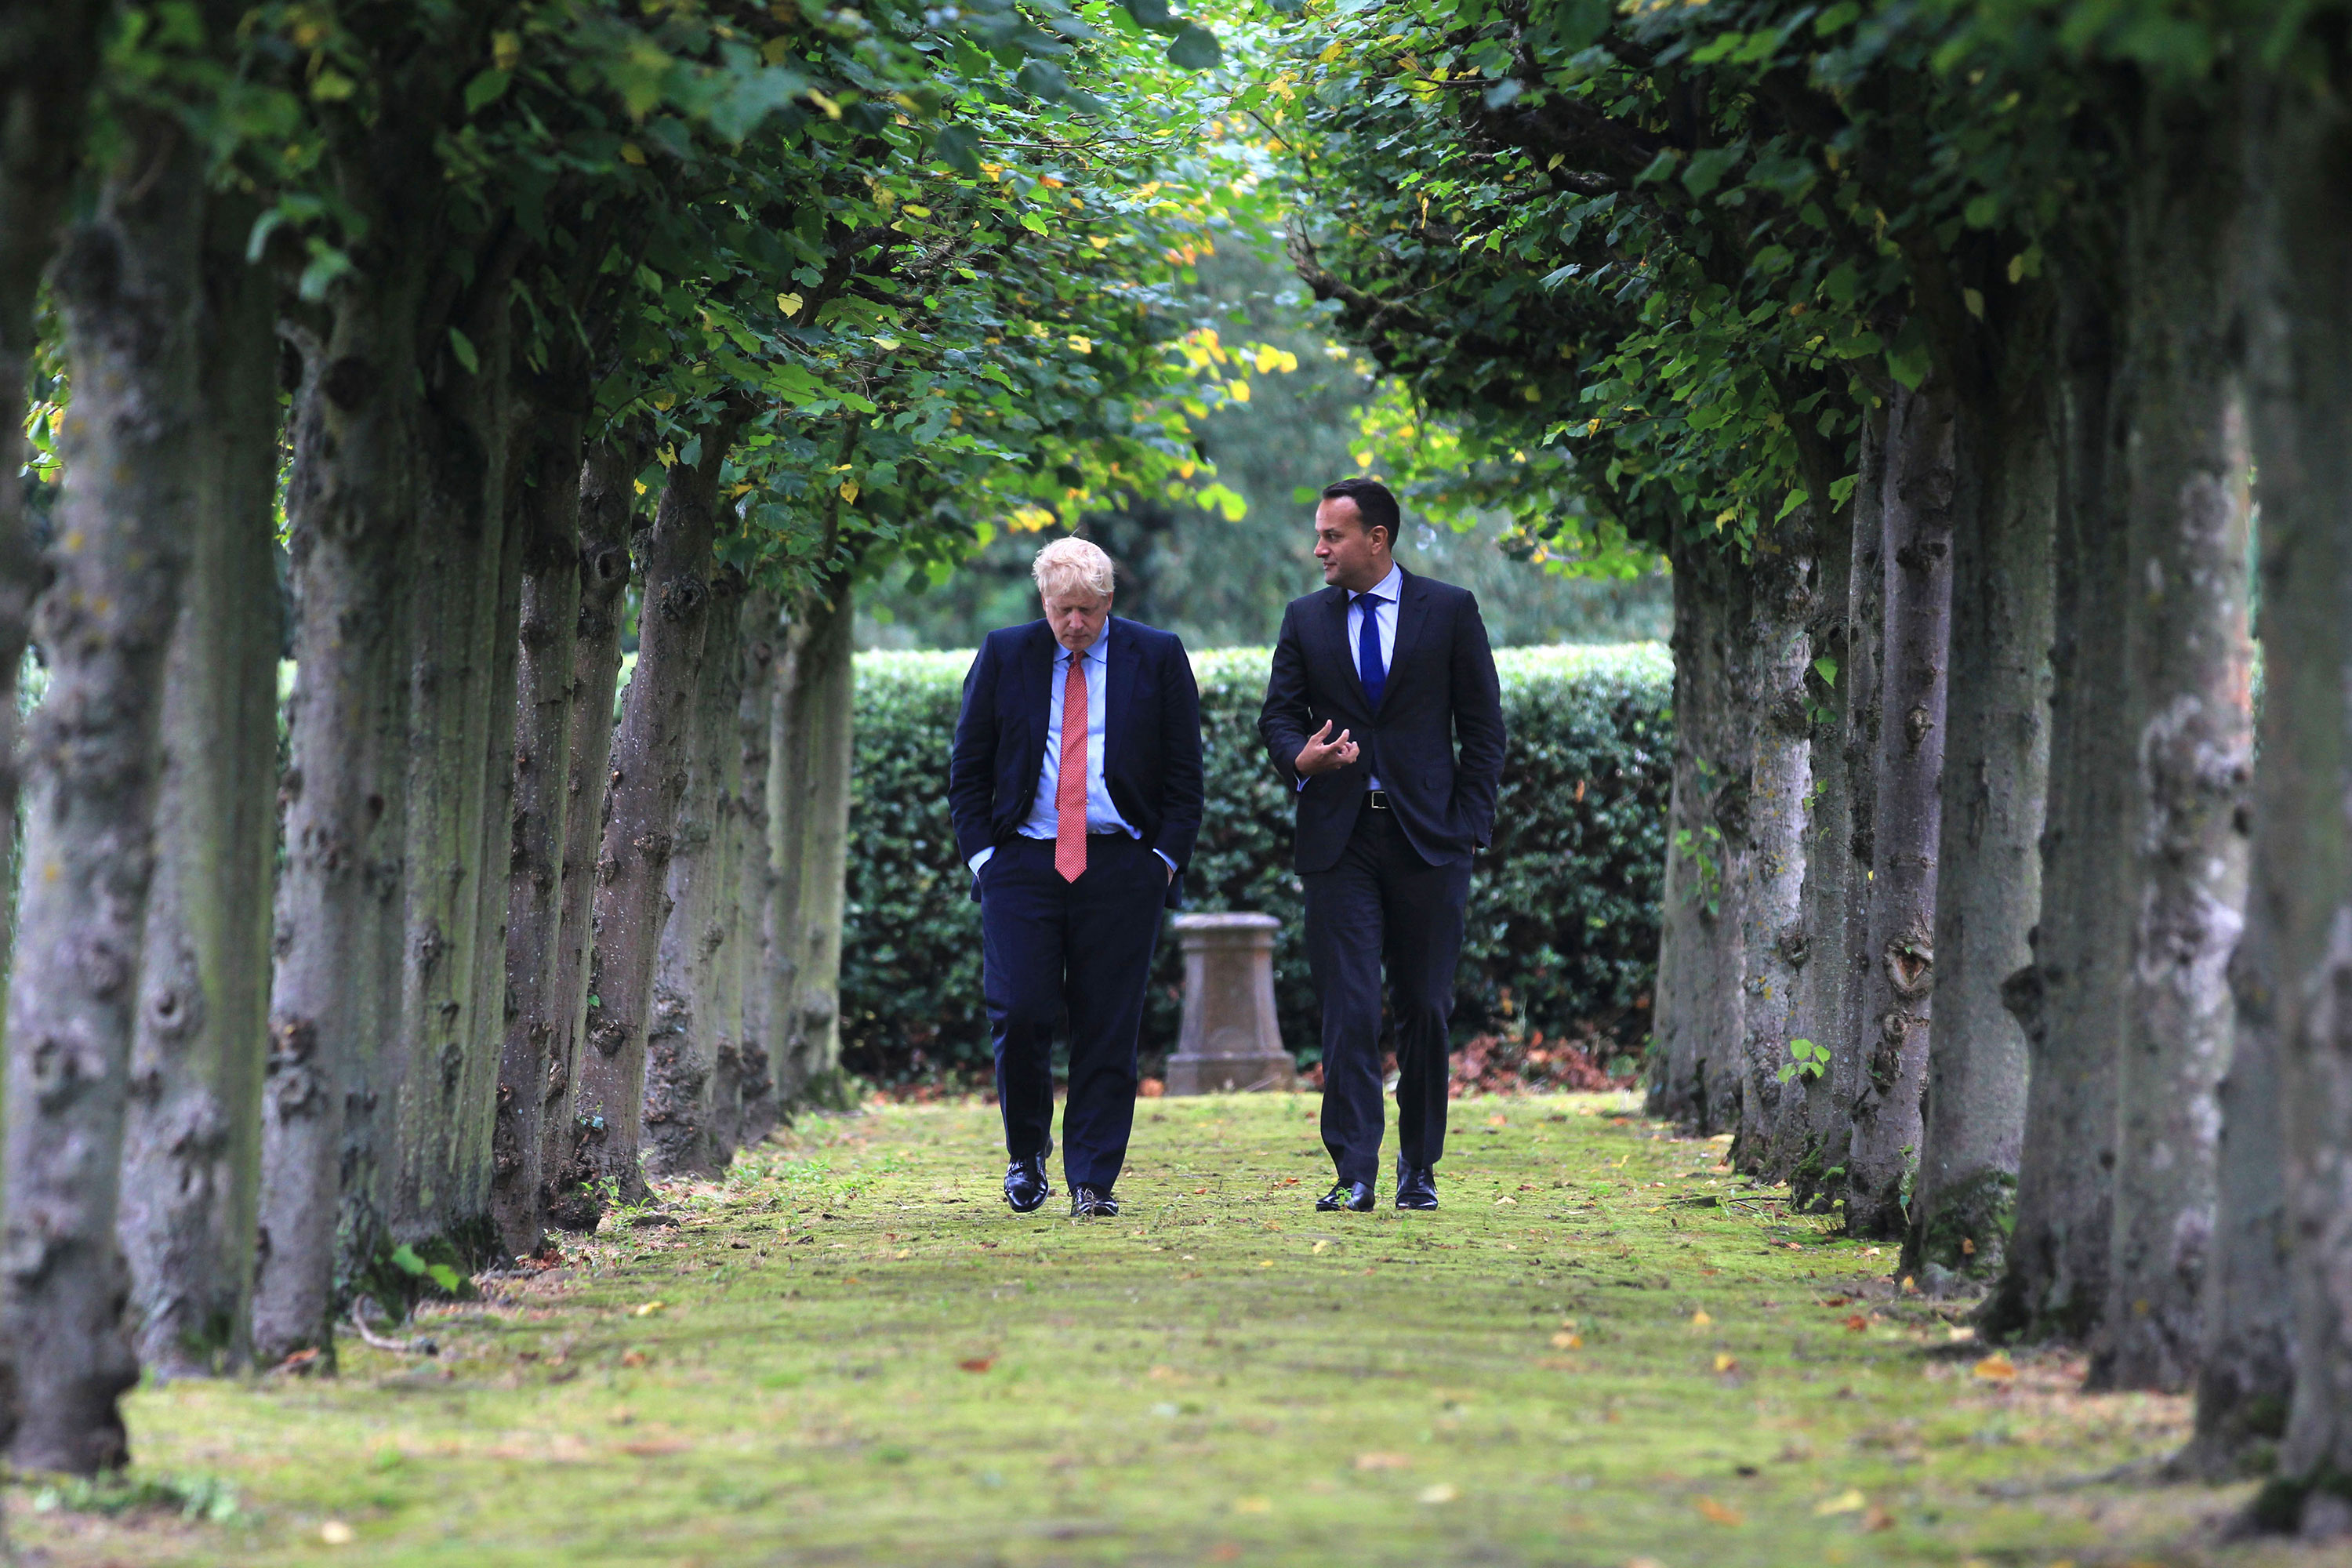 Boris Johnson and Leo Varadkar take a walk in the woods at Thornton Manor, northwest England.